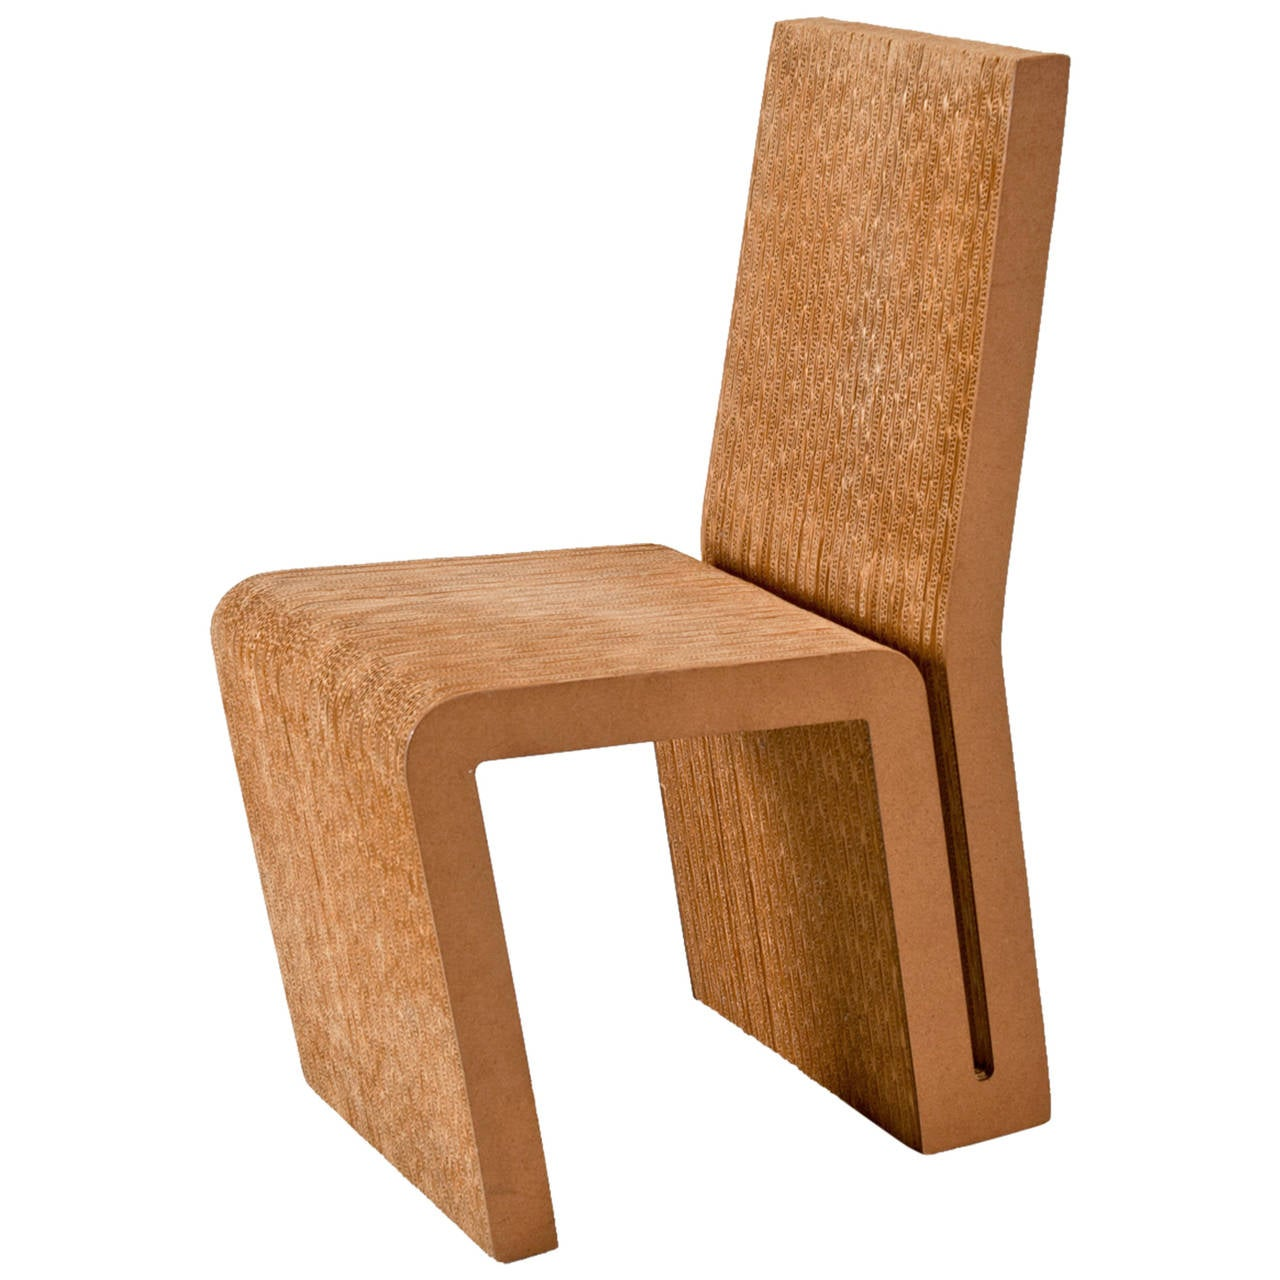 Cardboard Chair Frank Gehry Side Chair In Cardboard For Vitra Edition For